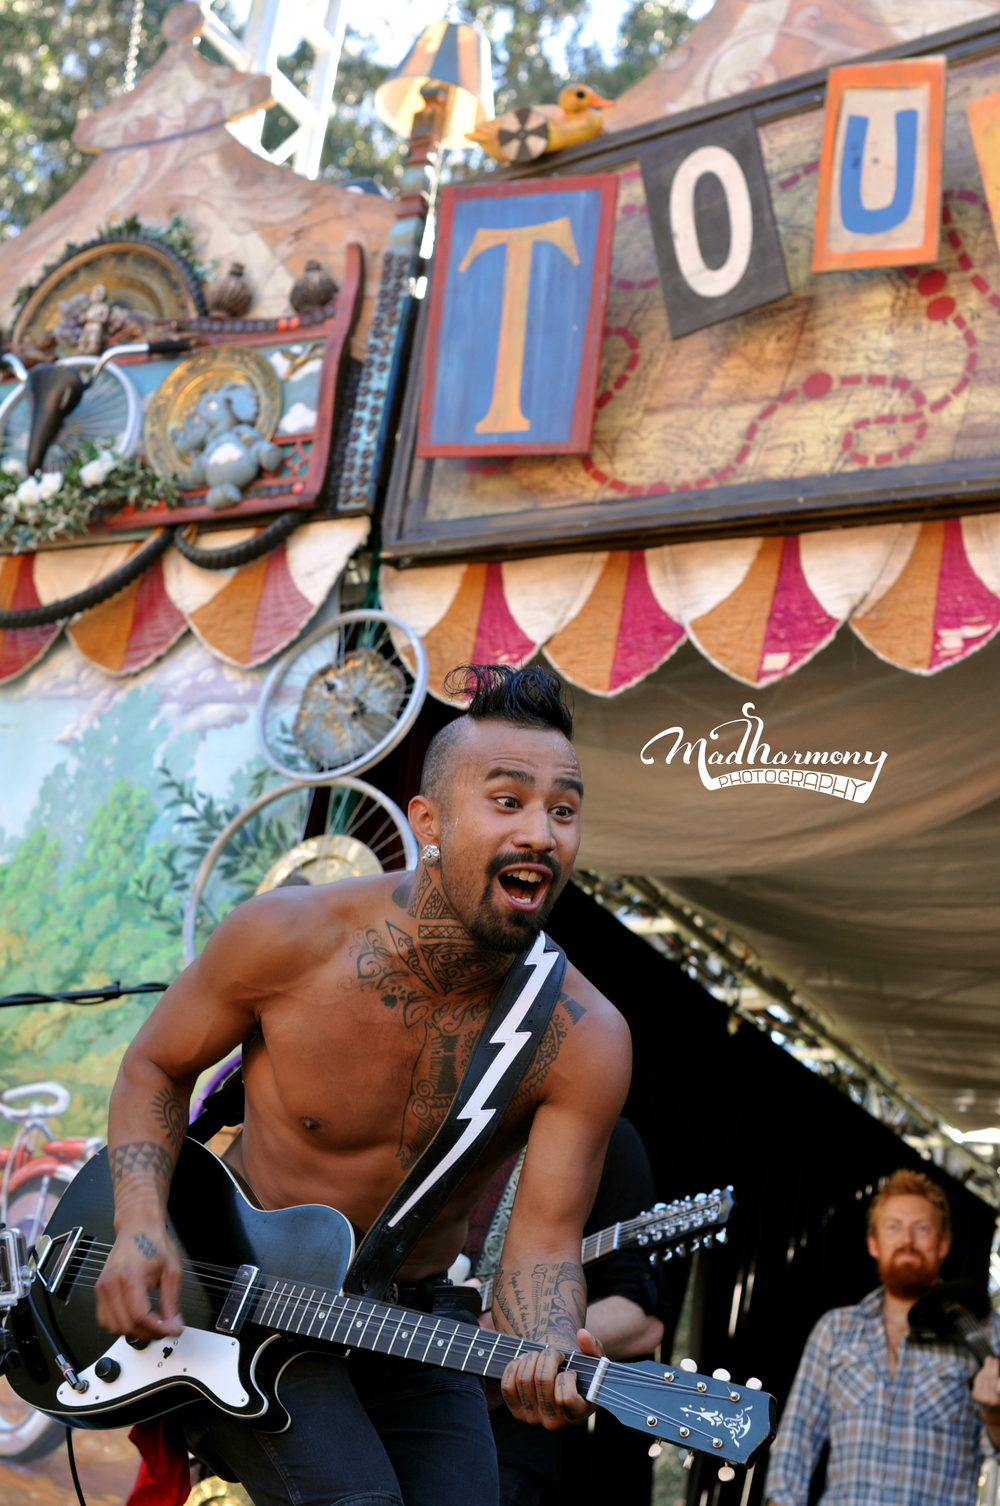 Nahko & Medicine For The People / 09.19.15 / Golden Gate Park